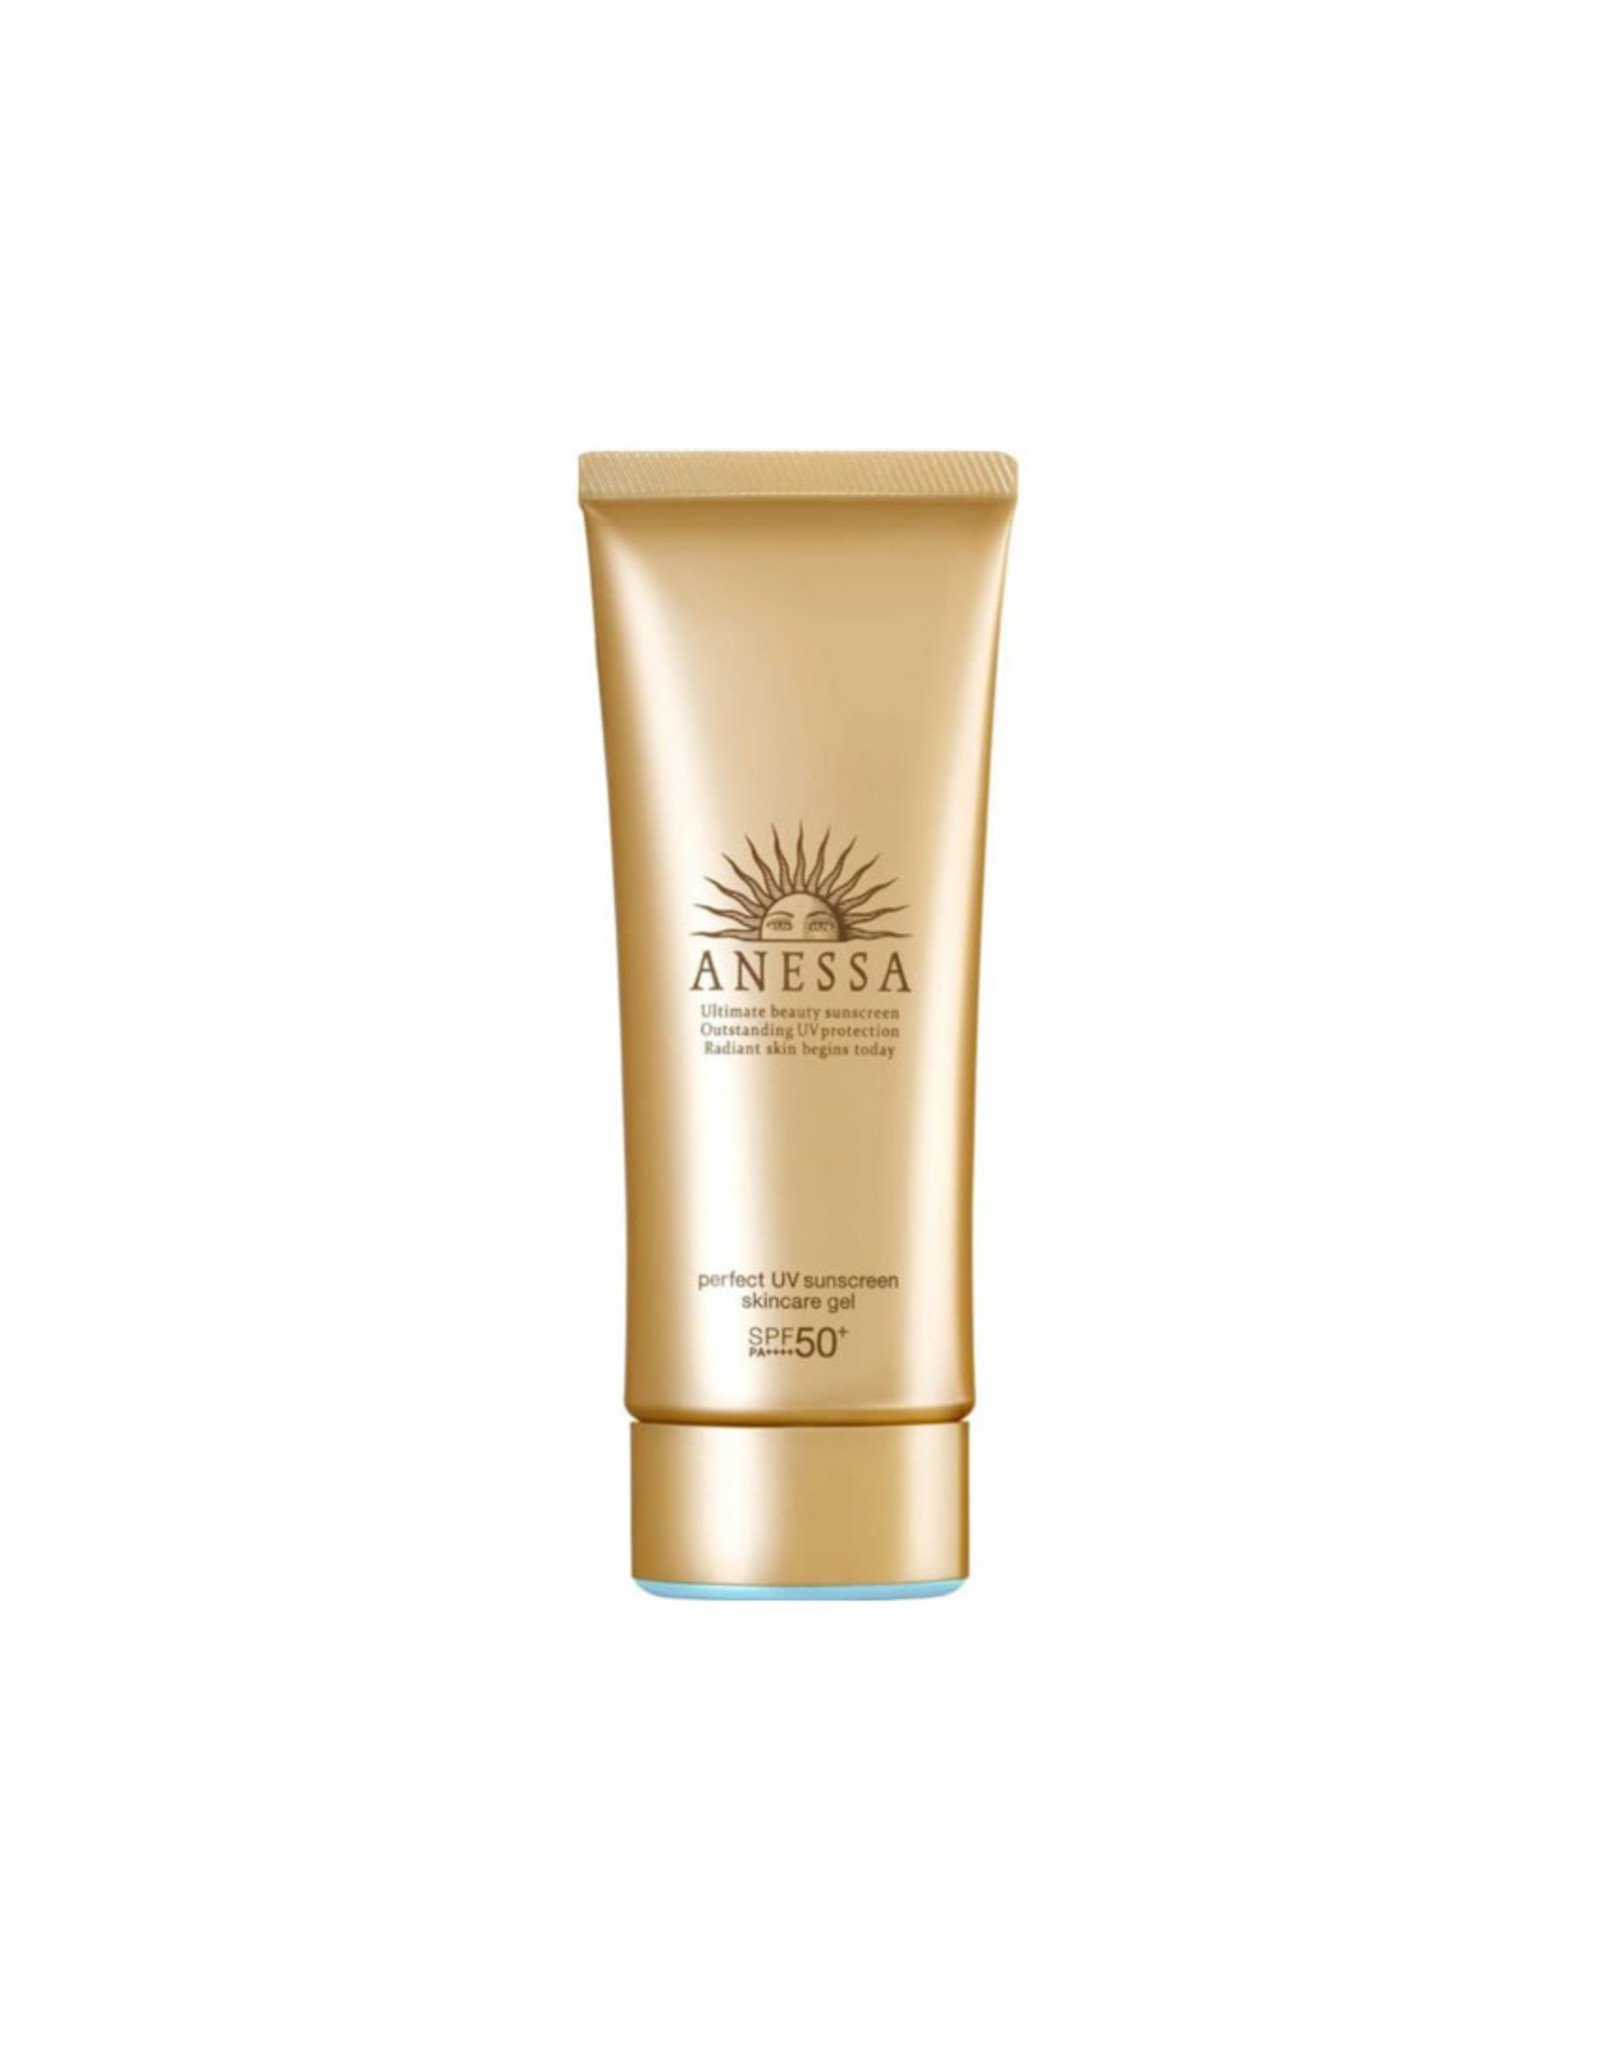 Shiseido Shiseido Anessa Prefect UV Sunscreen Gel SPF 50+ PA++++